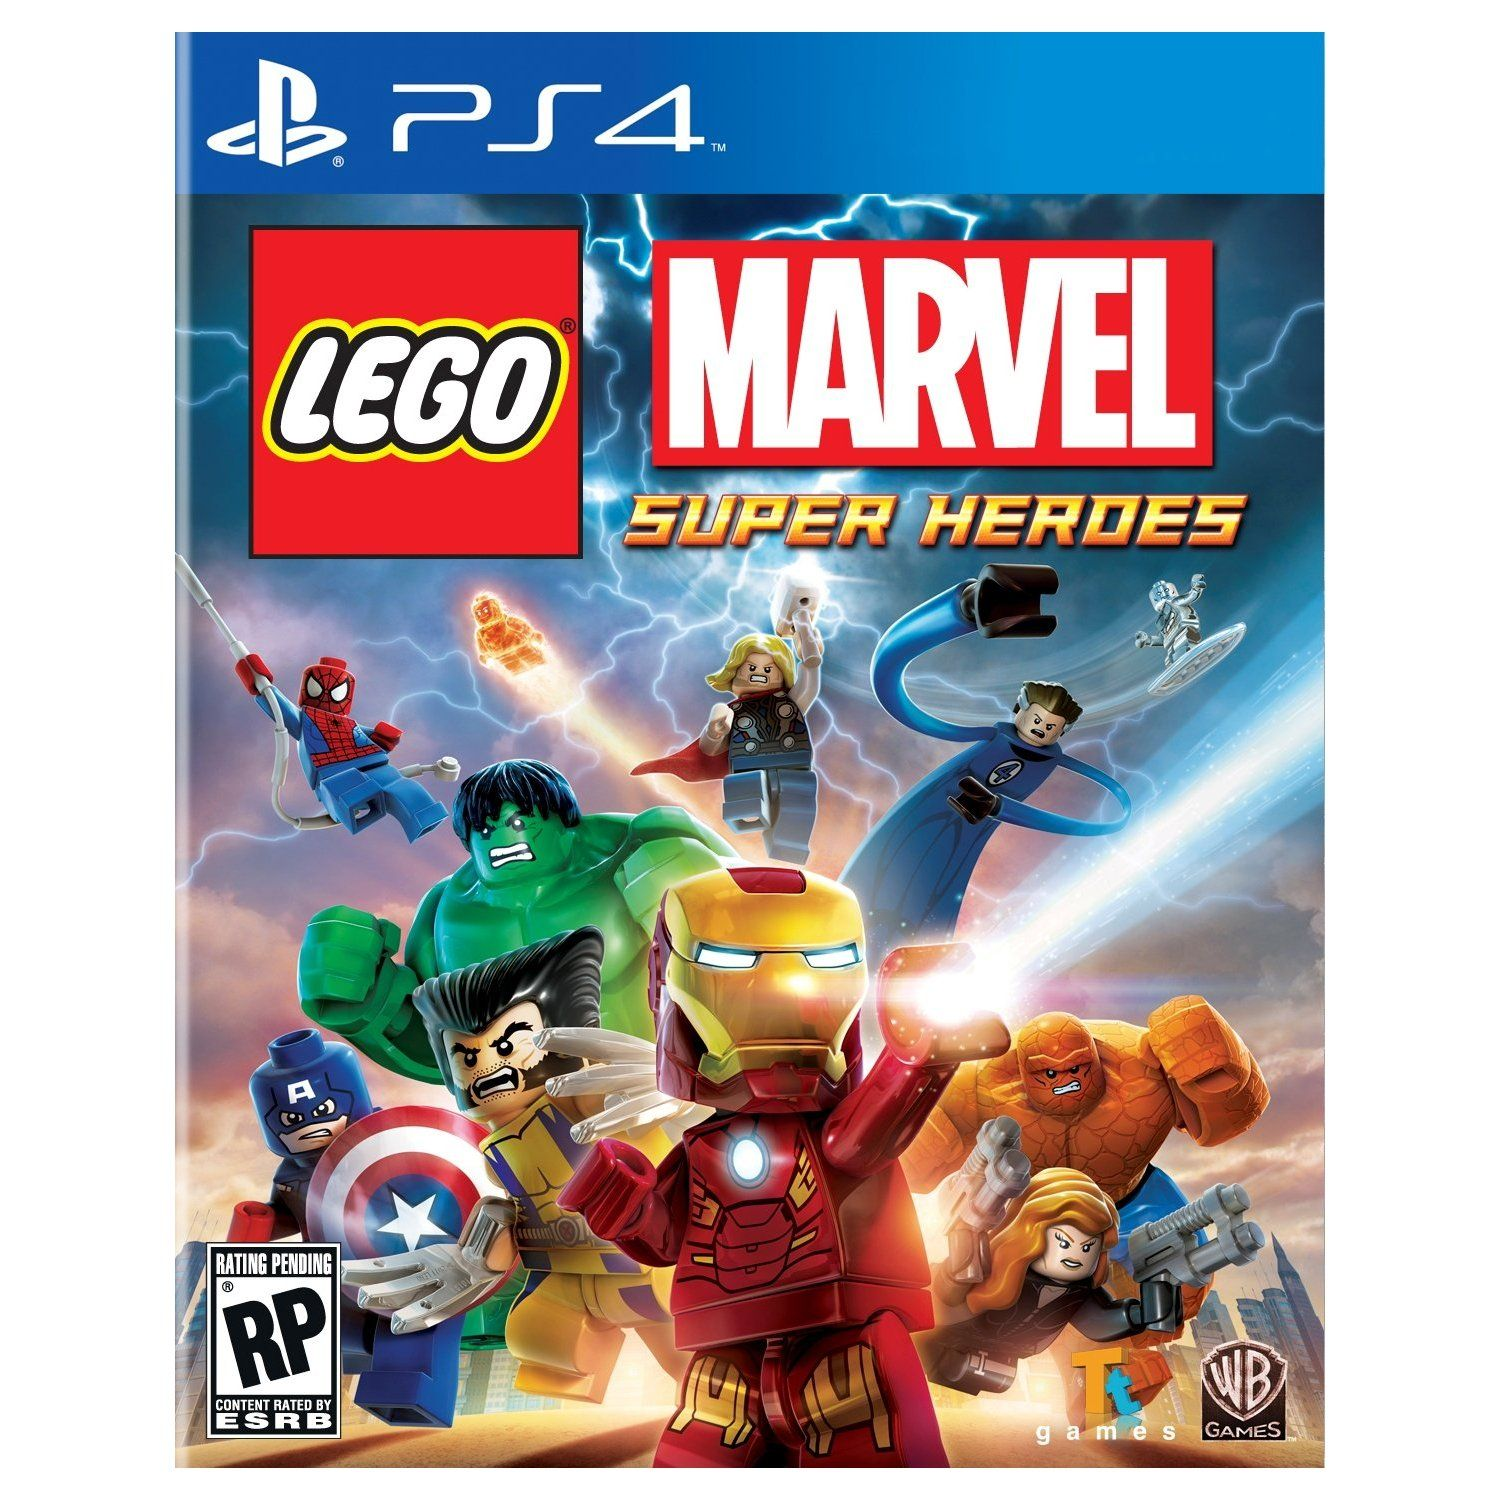 Lego Marvel PS4 Kids are loving this game! Lego marvel